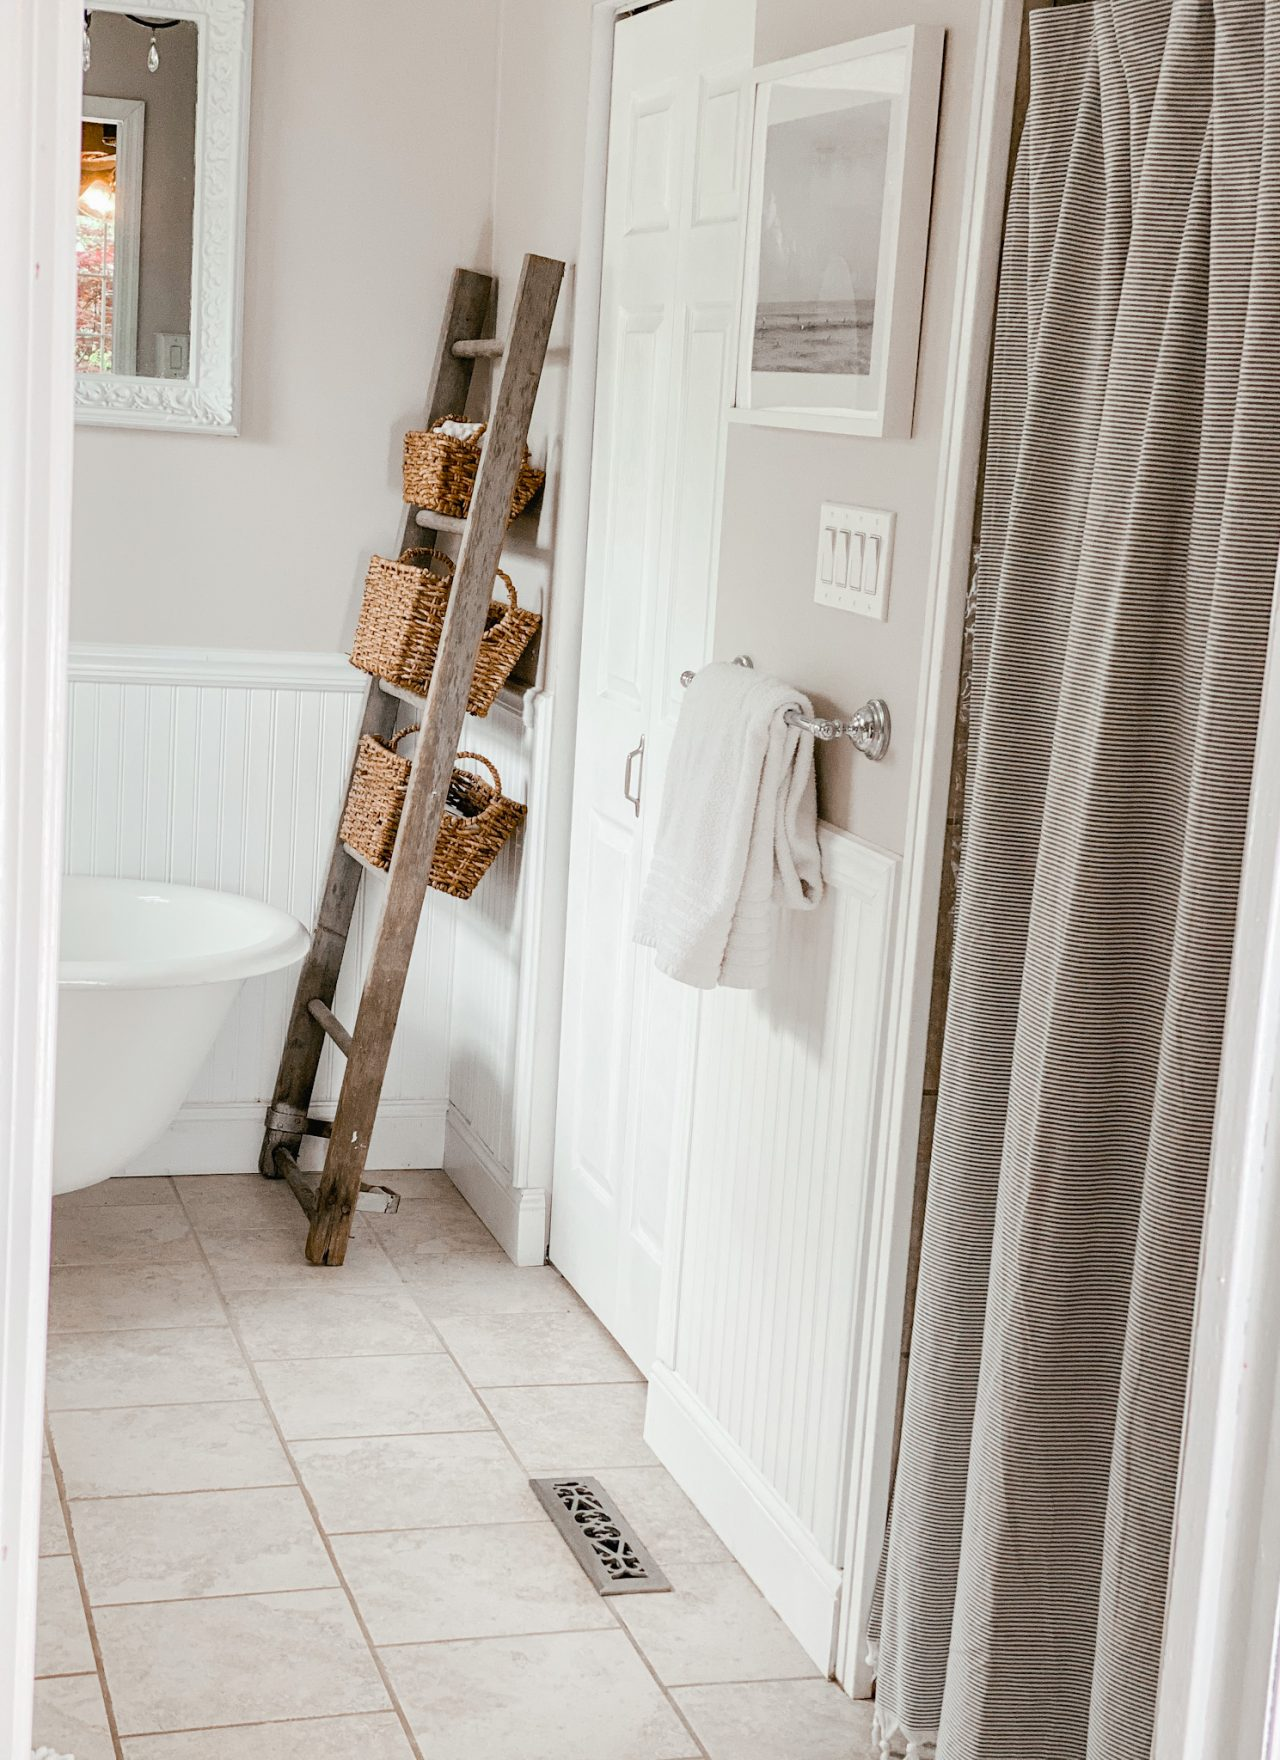 Hearth and Hand striped shower curtain for simple bathroom update